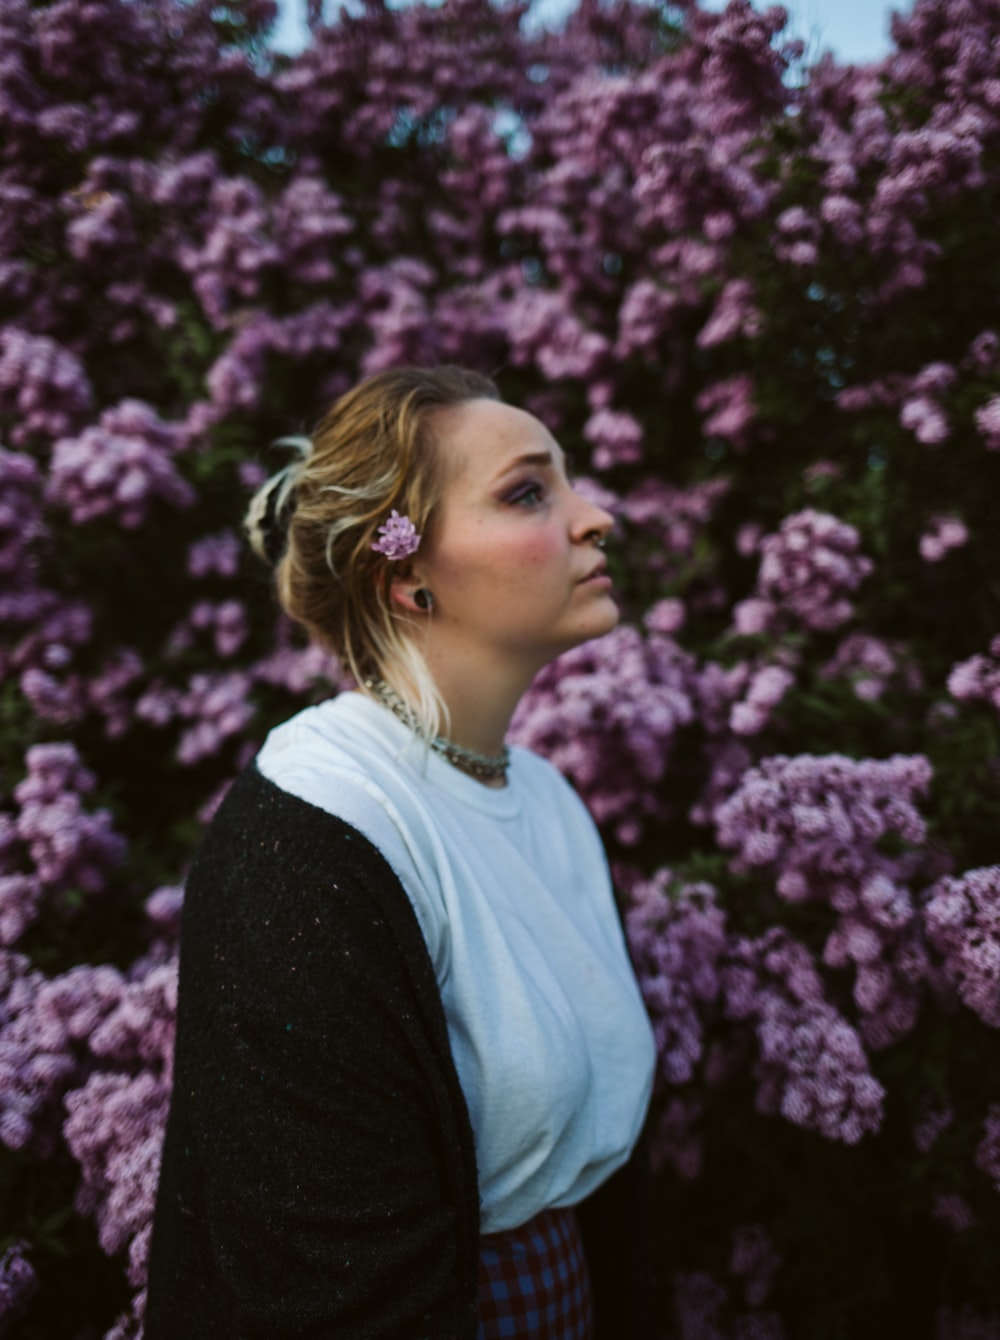 woman in black cardigan and white shirt standing near purple flowers